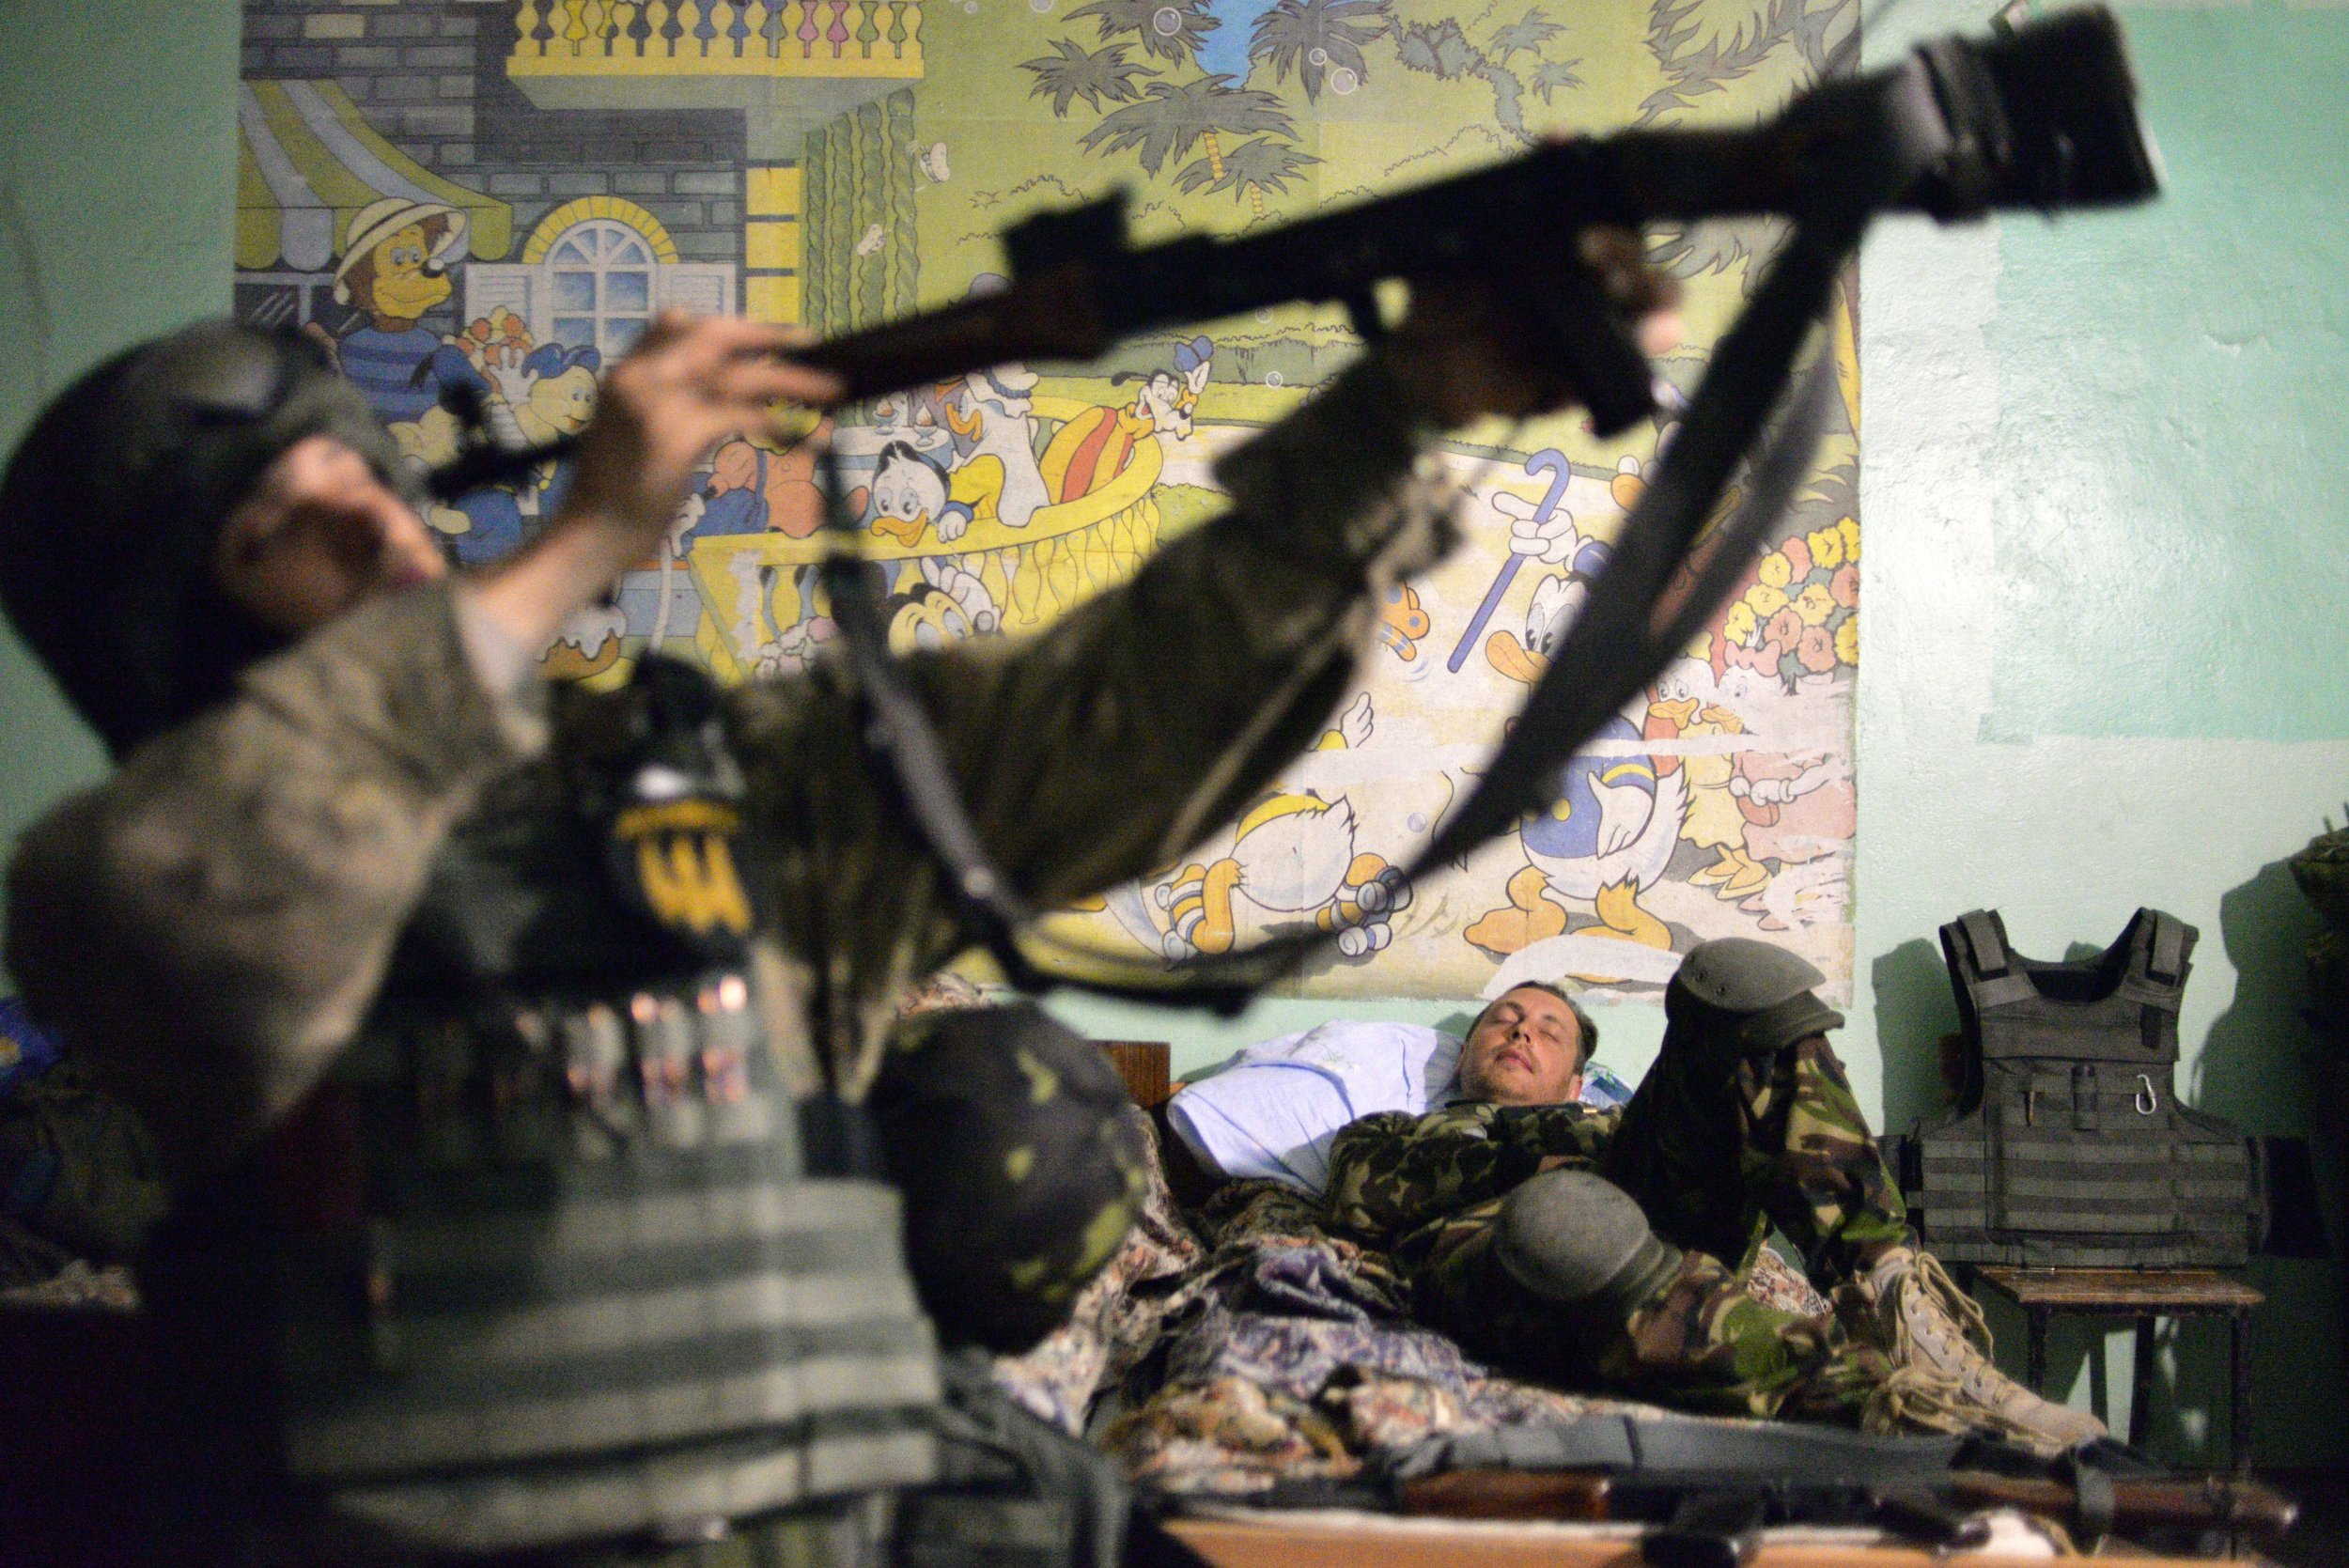 Ukraine's war against Putin-backed rebels is being undermined by corruption | Opinion